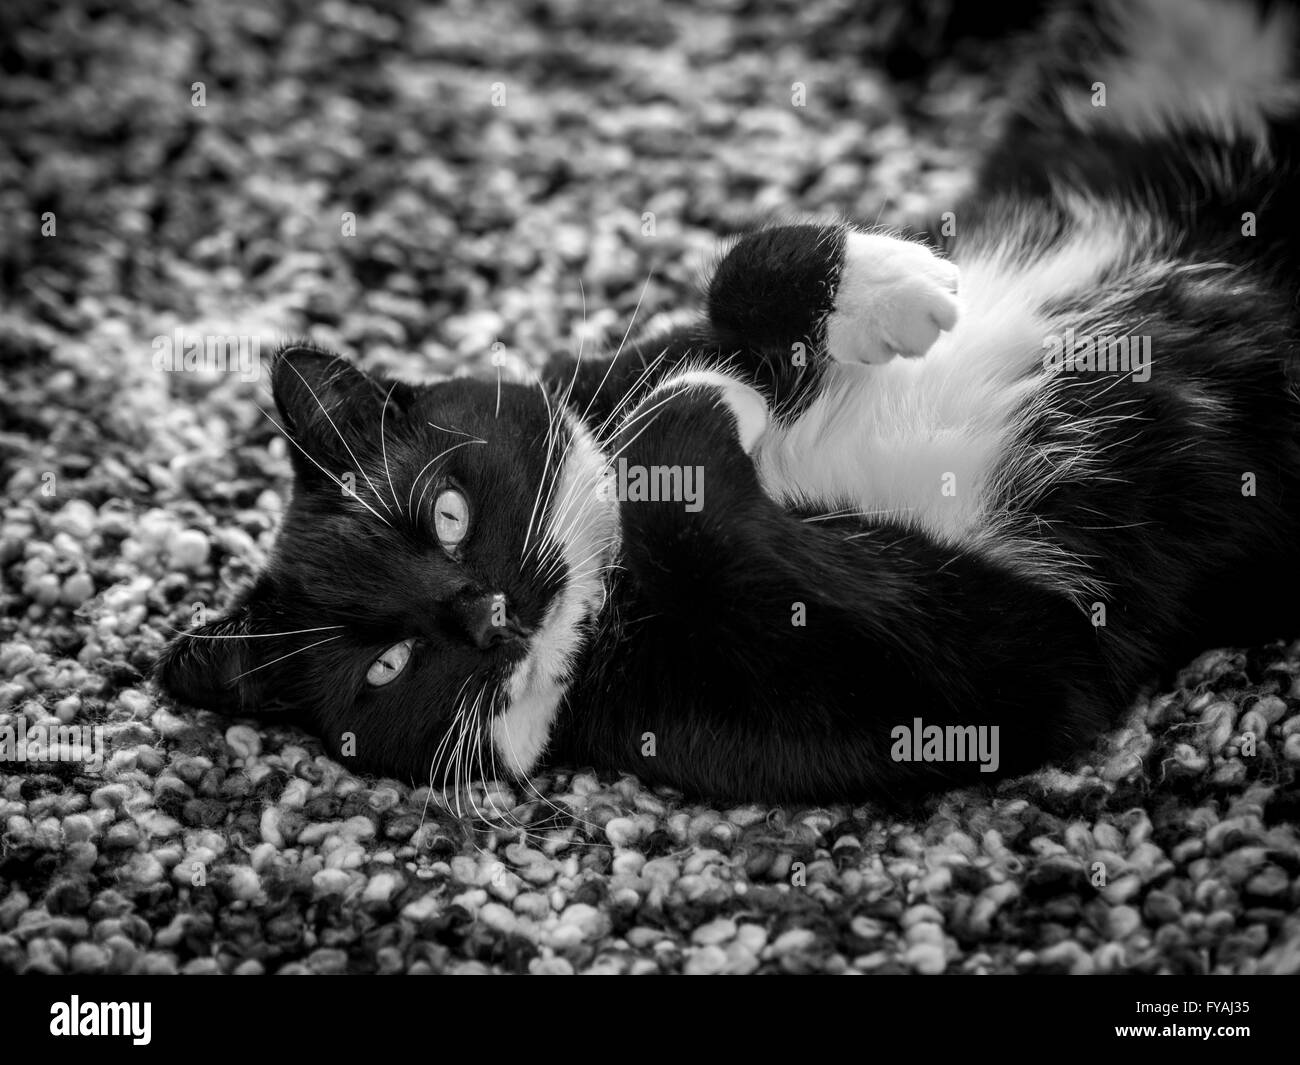 Black and white cat lying on it's back looking at camera - Stock Image